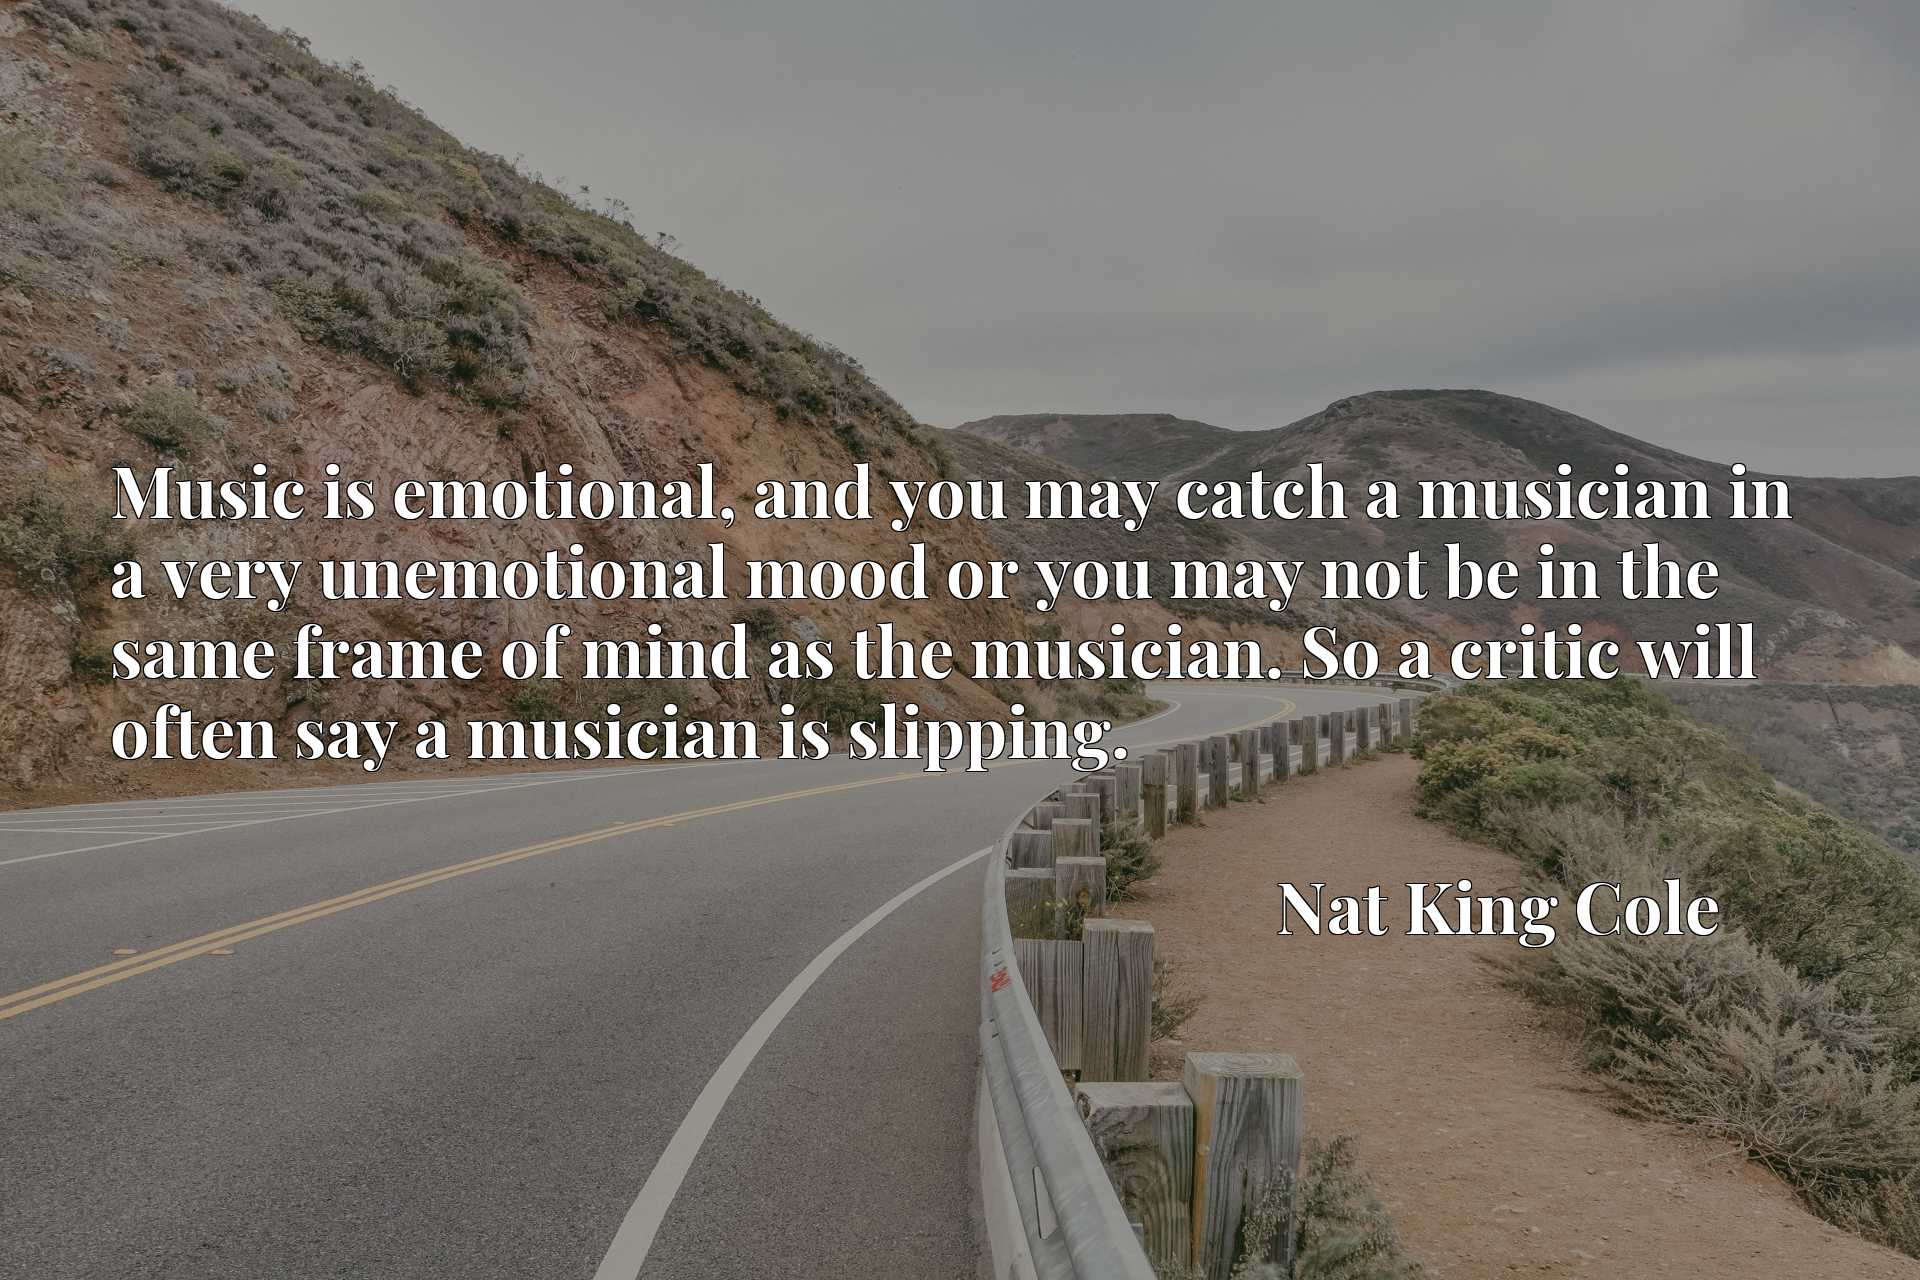 Music is emotional, and you may catch a musician in a very unemotional mood or you may not be in the same frame of mind as the musician. So a critic will often say a musician is slipping.